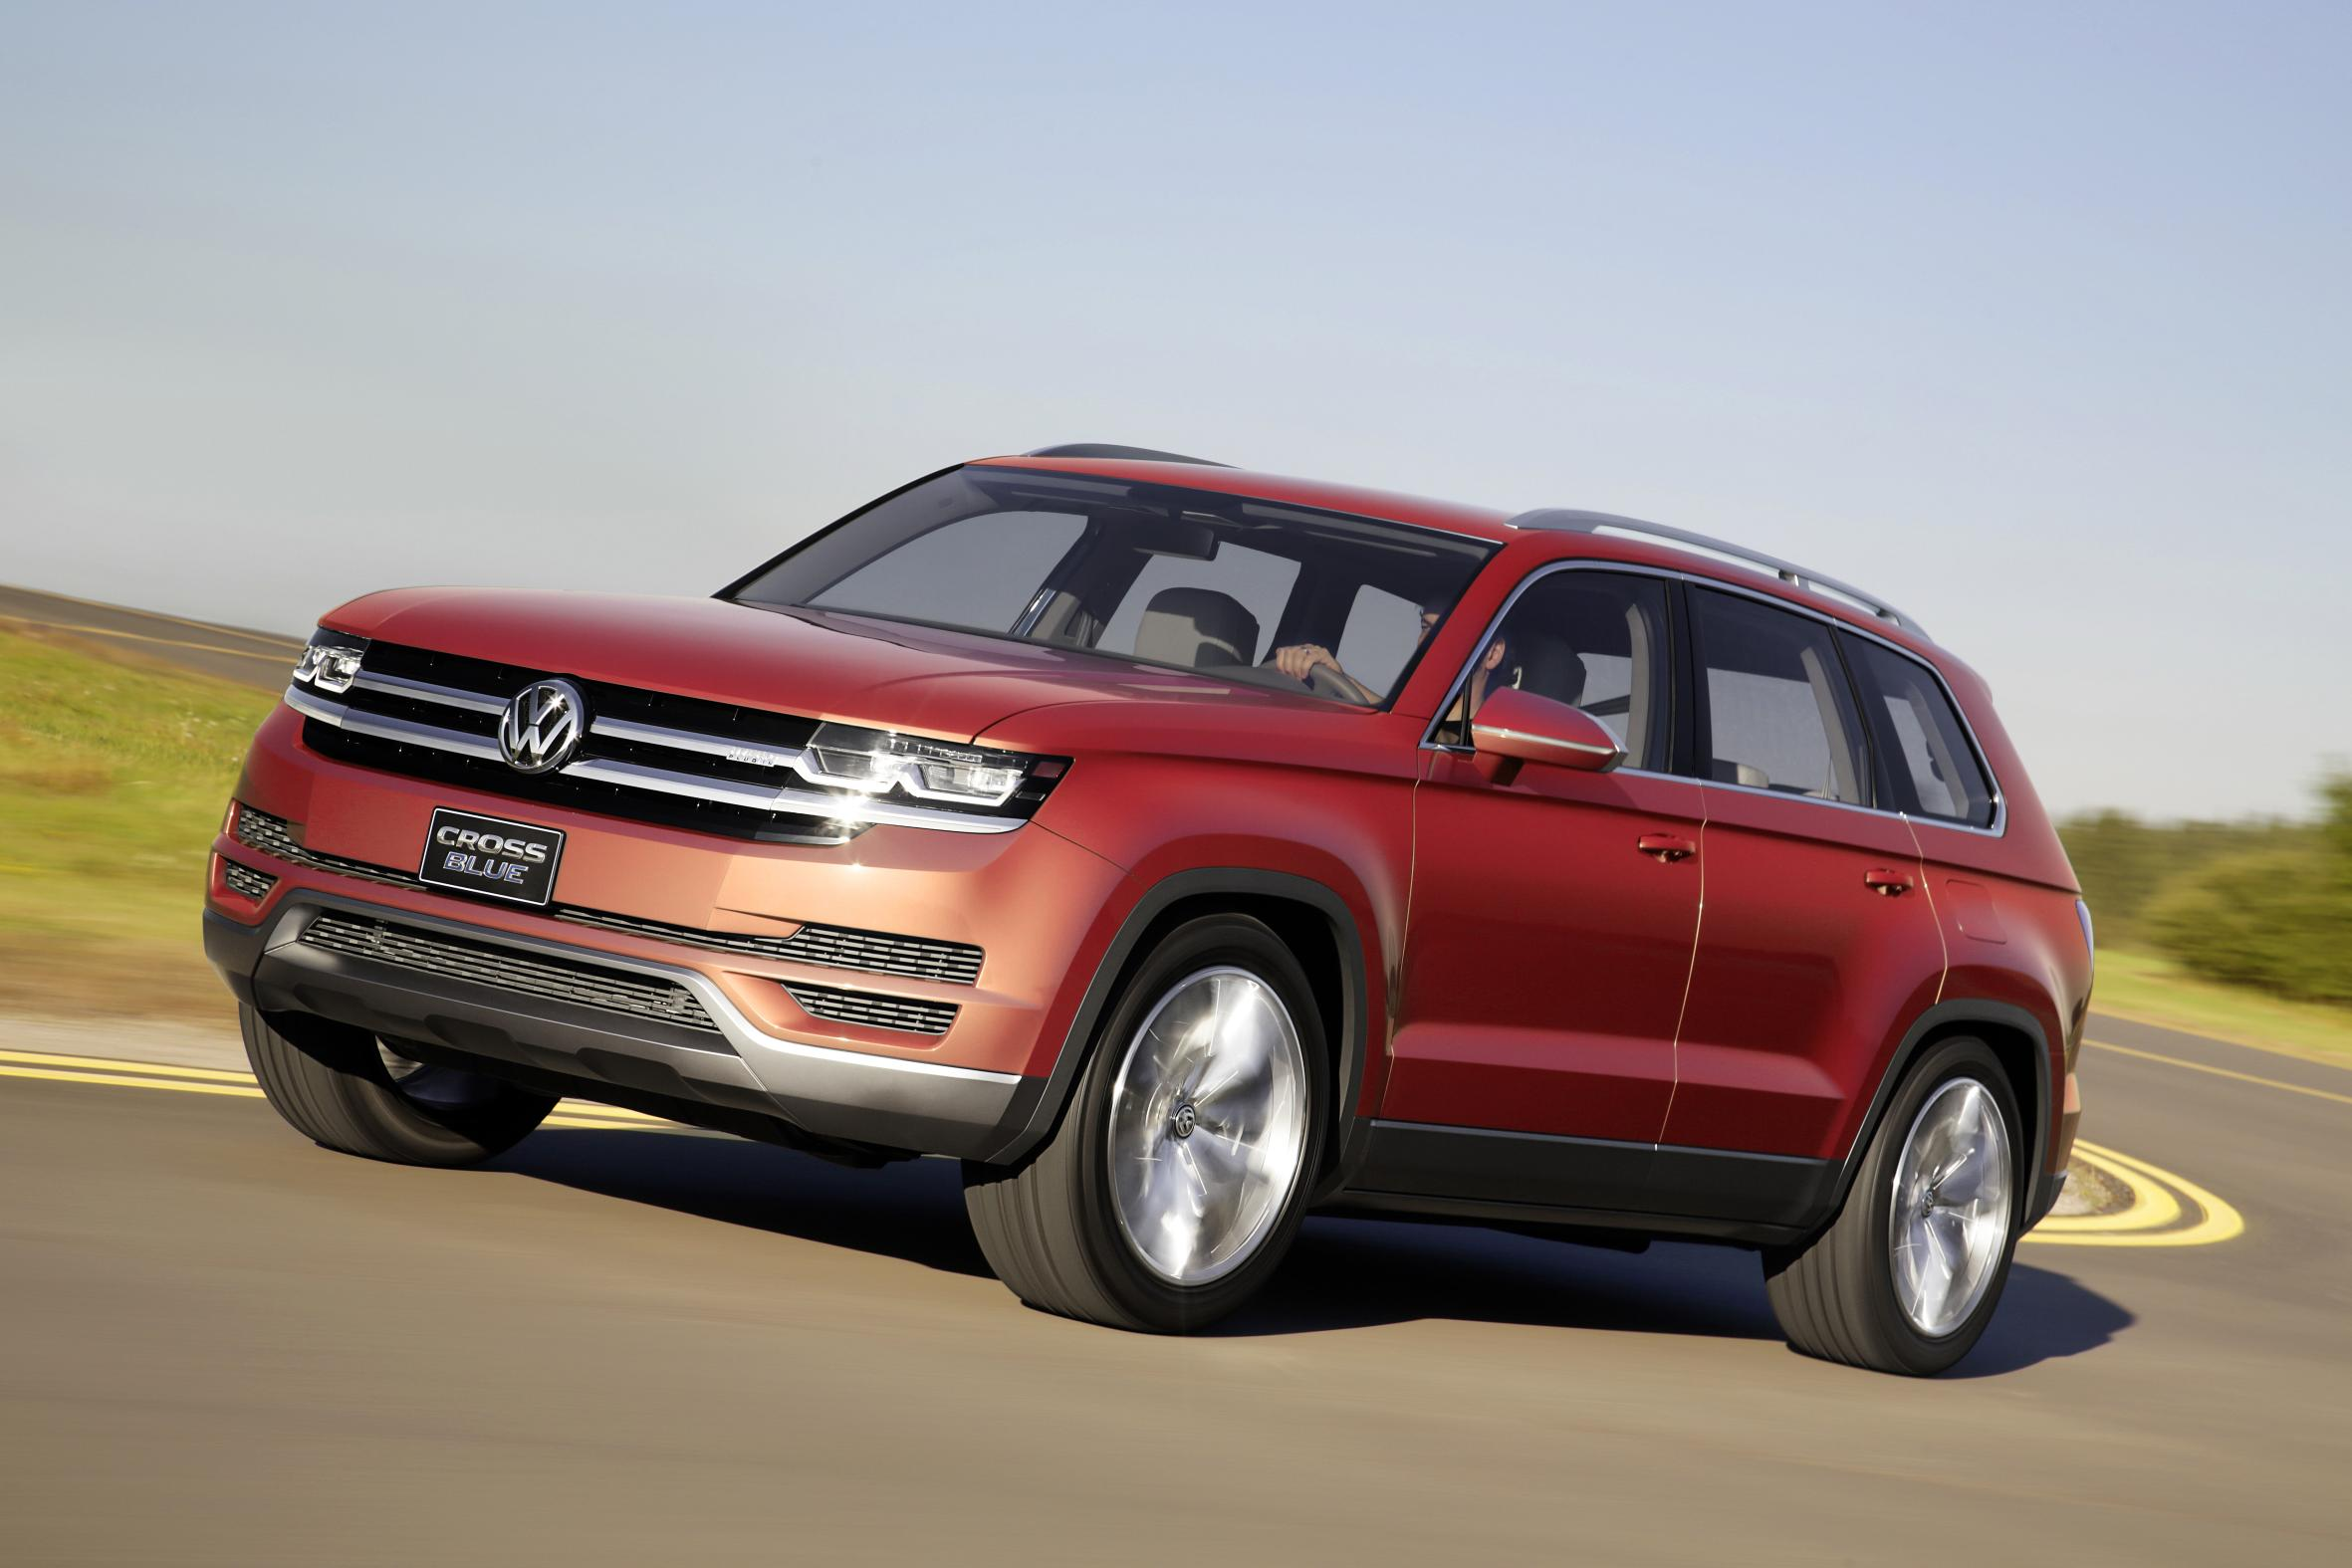 volkswagen 39 s new suv will be named atlas german media says autoevolution. Black Bedroom Furniture Sets. Home Design Ideas